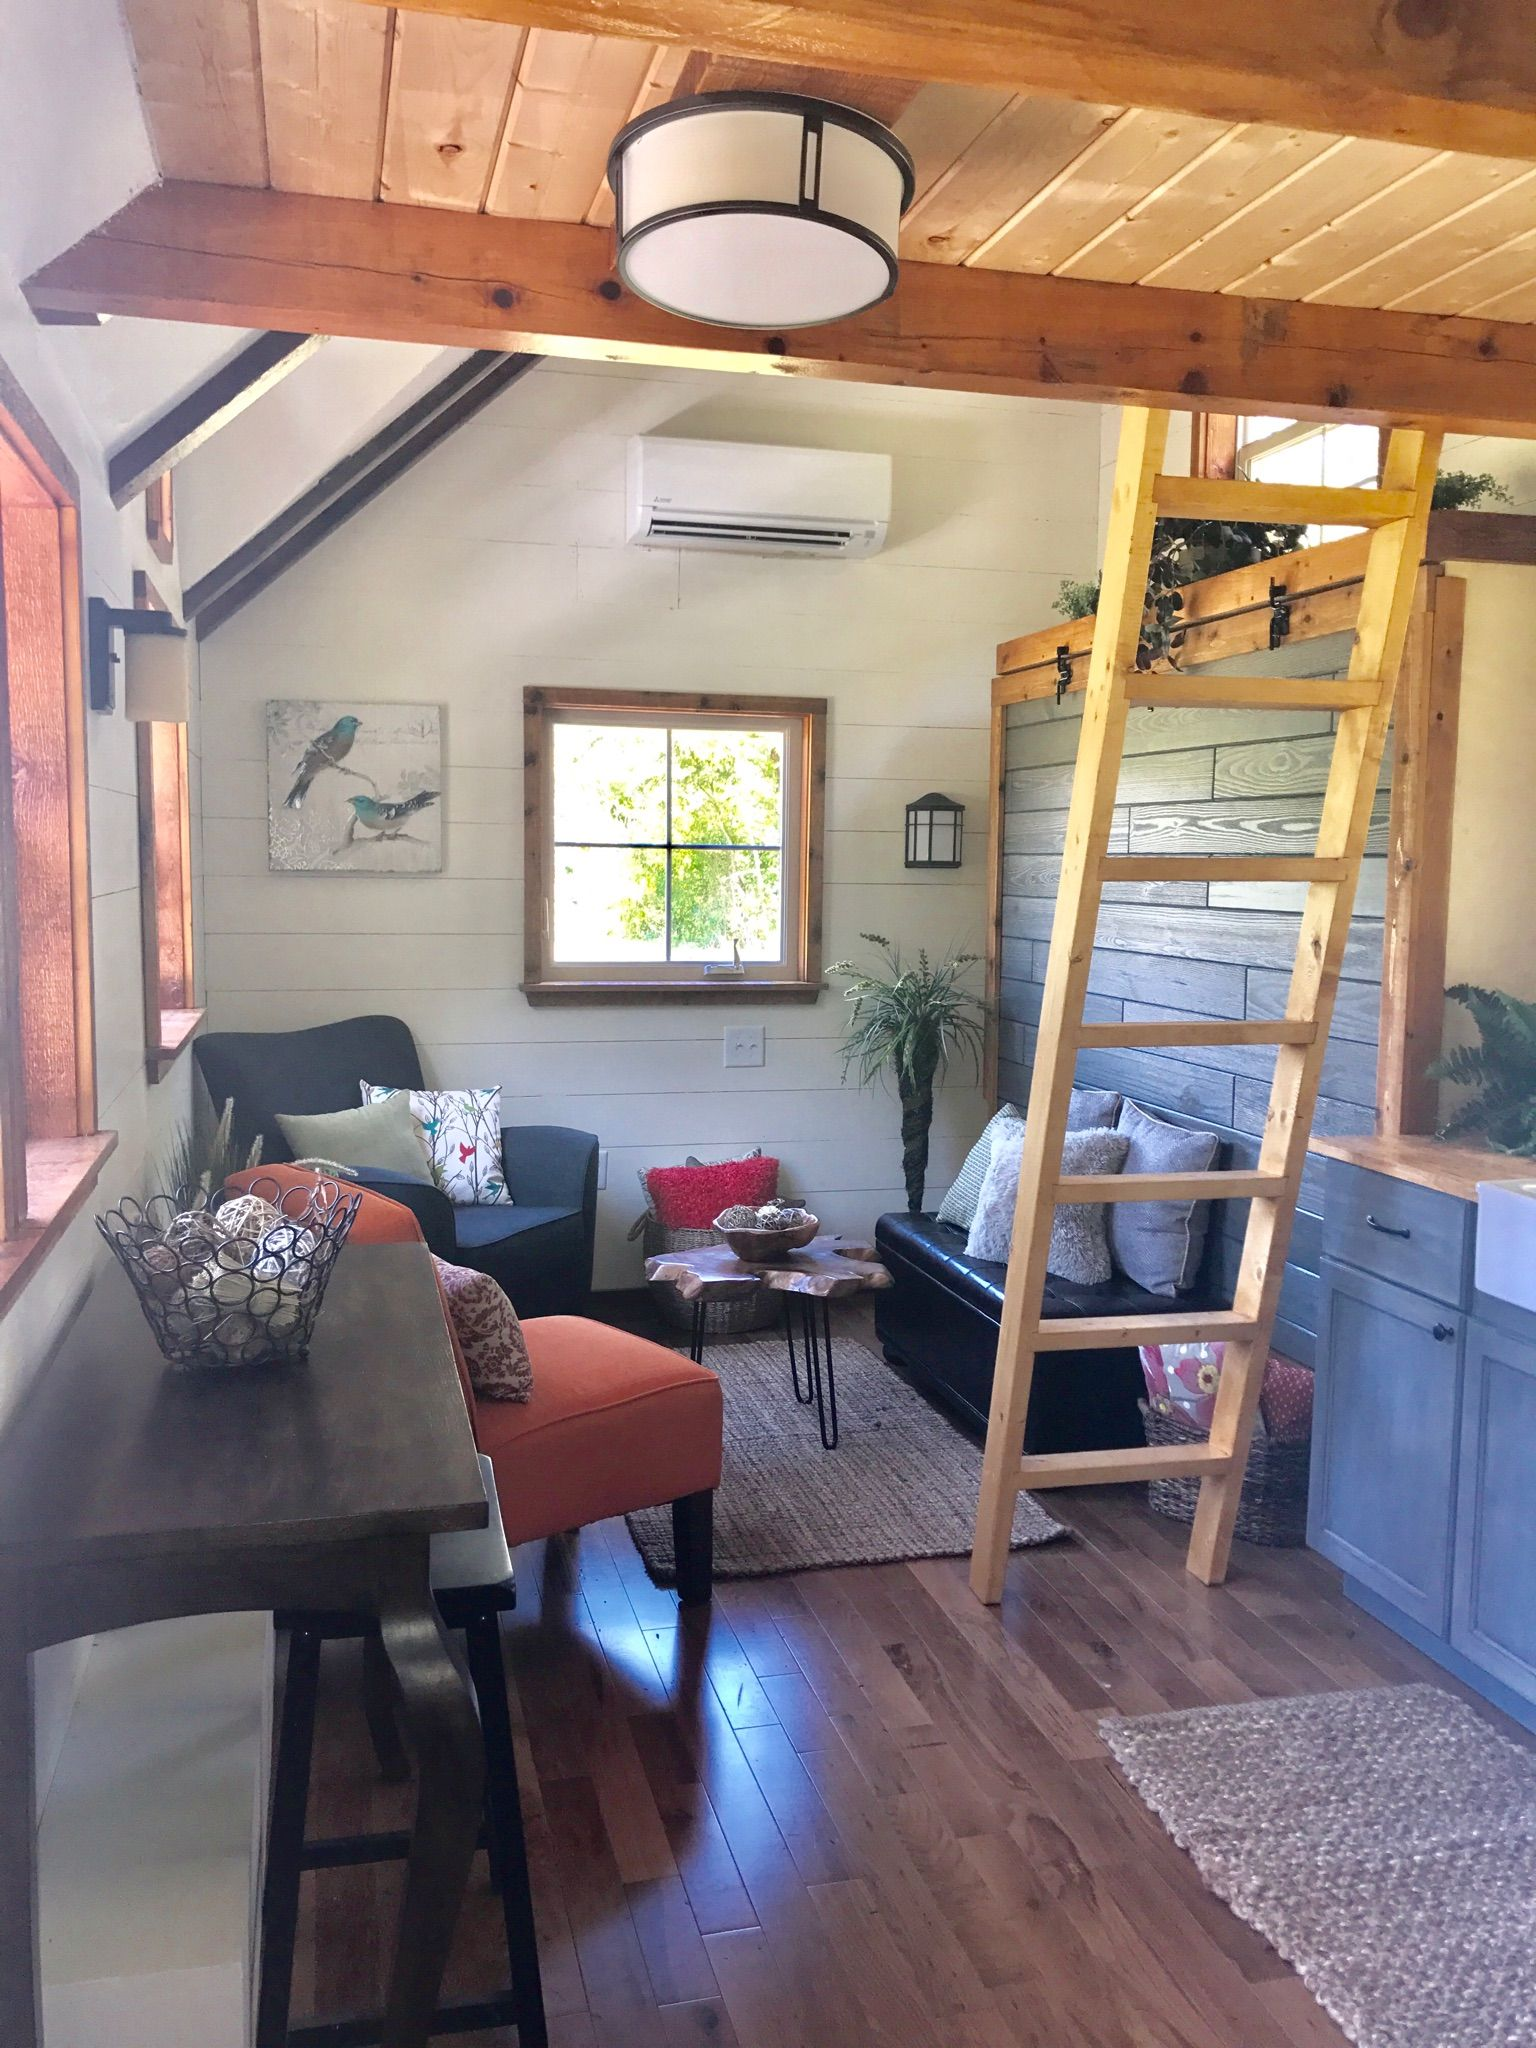 Goodshomedesign In 2020 Tiny House Living Tiny House Interior Home